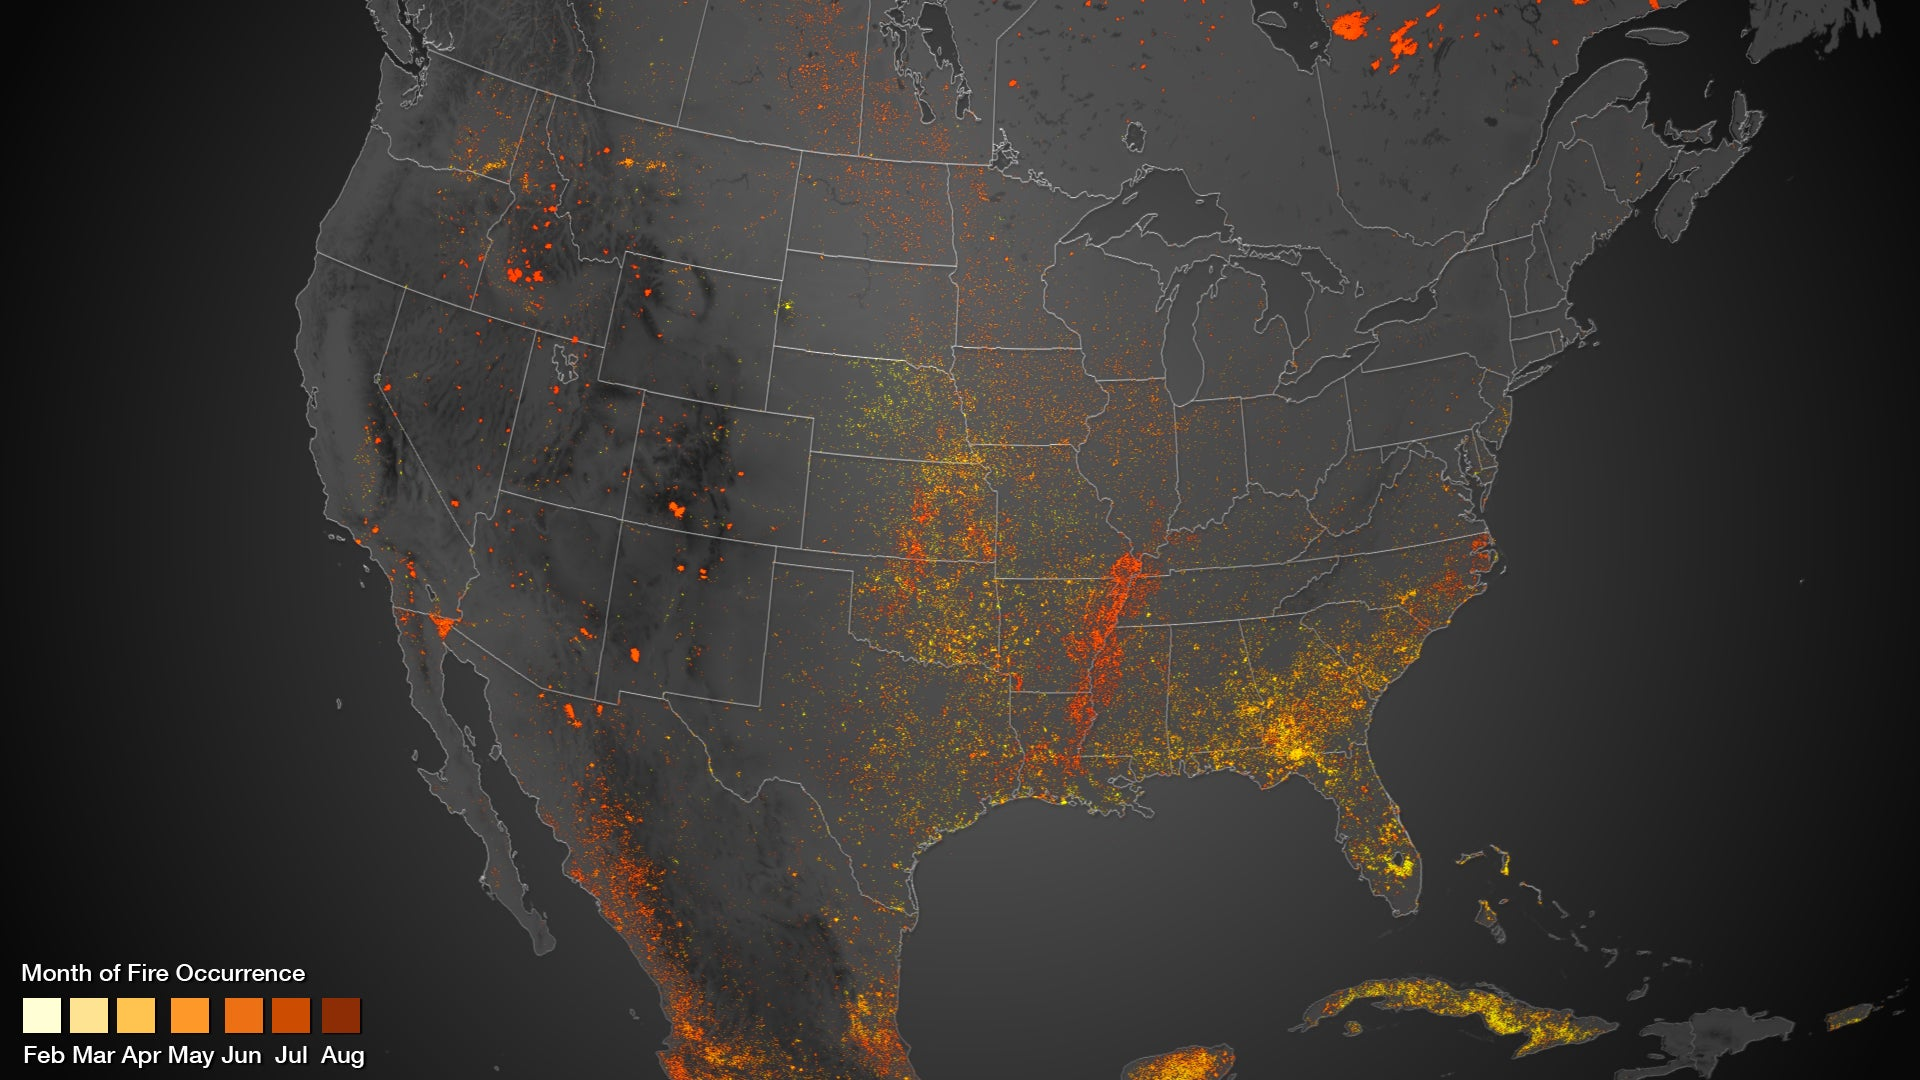 Us Wildfires Map 2013 Wildfire Map: NOAA's Satellites Show North America Ablaze